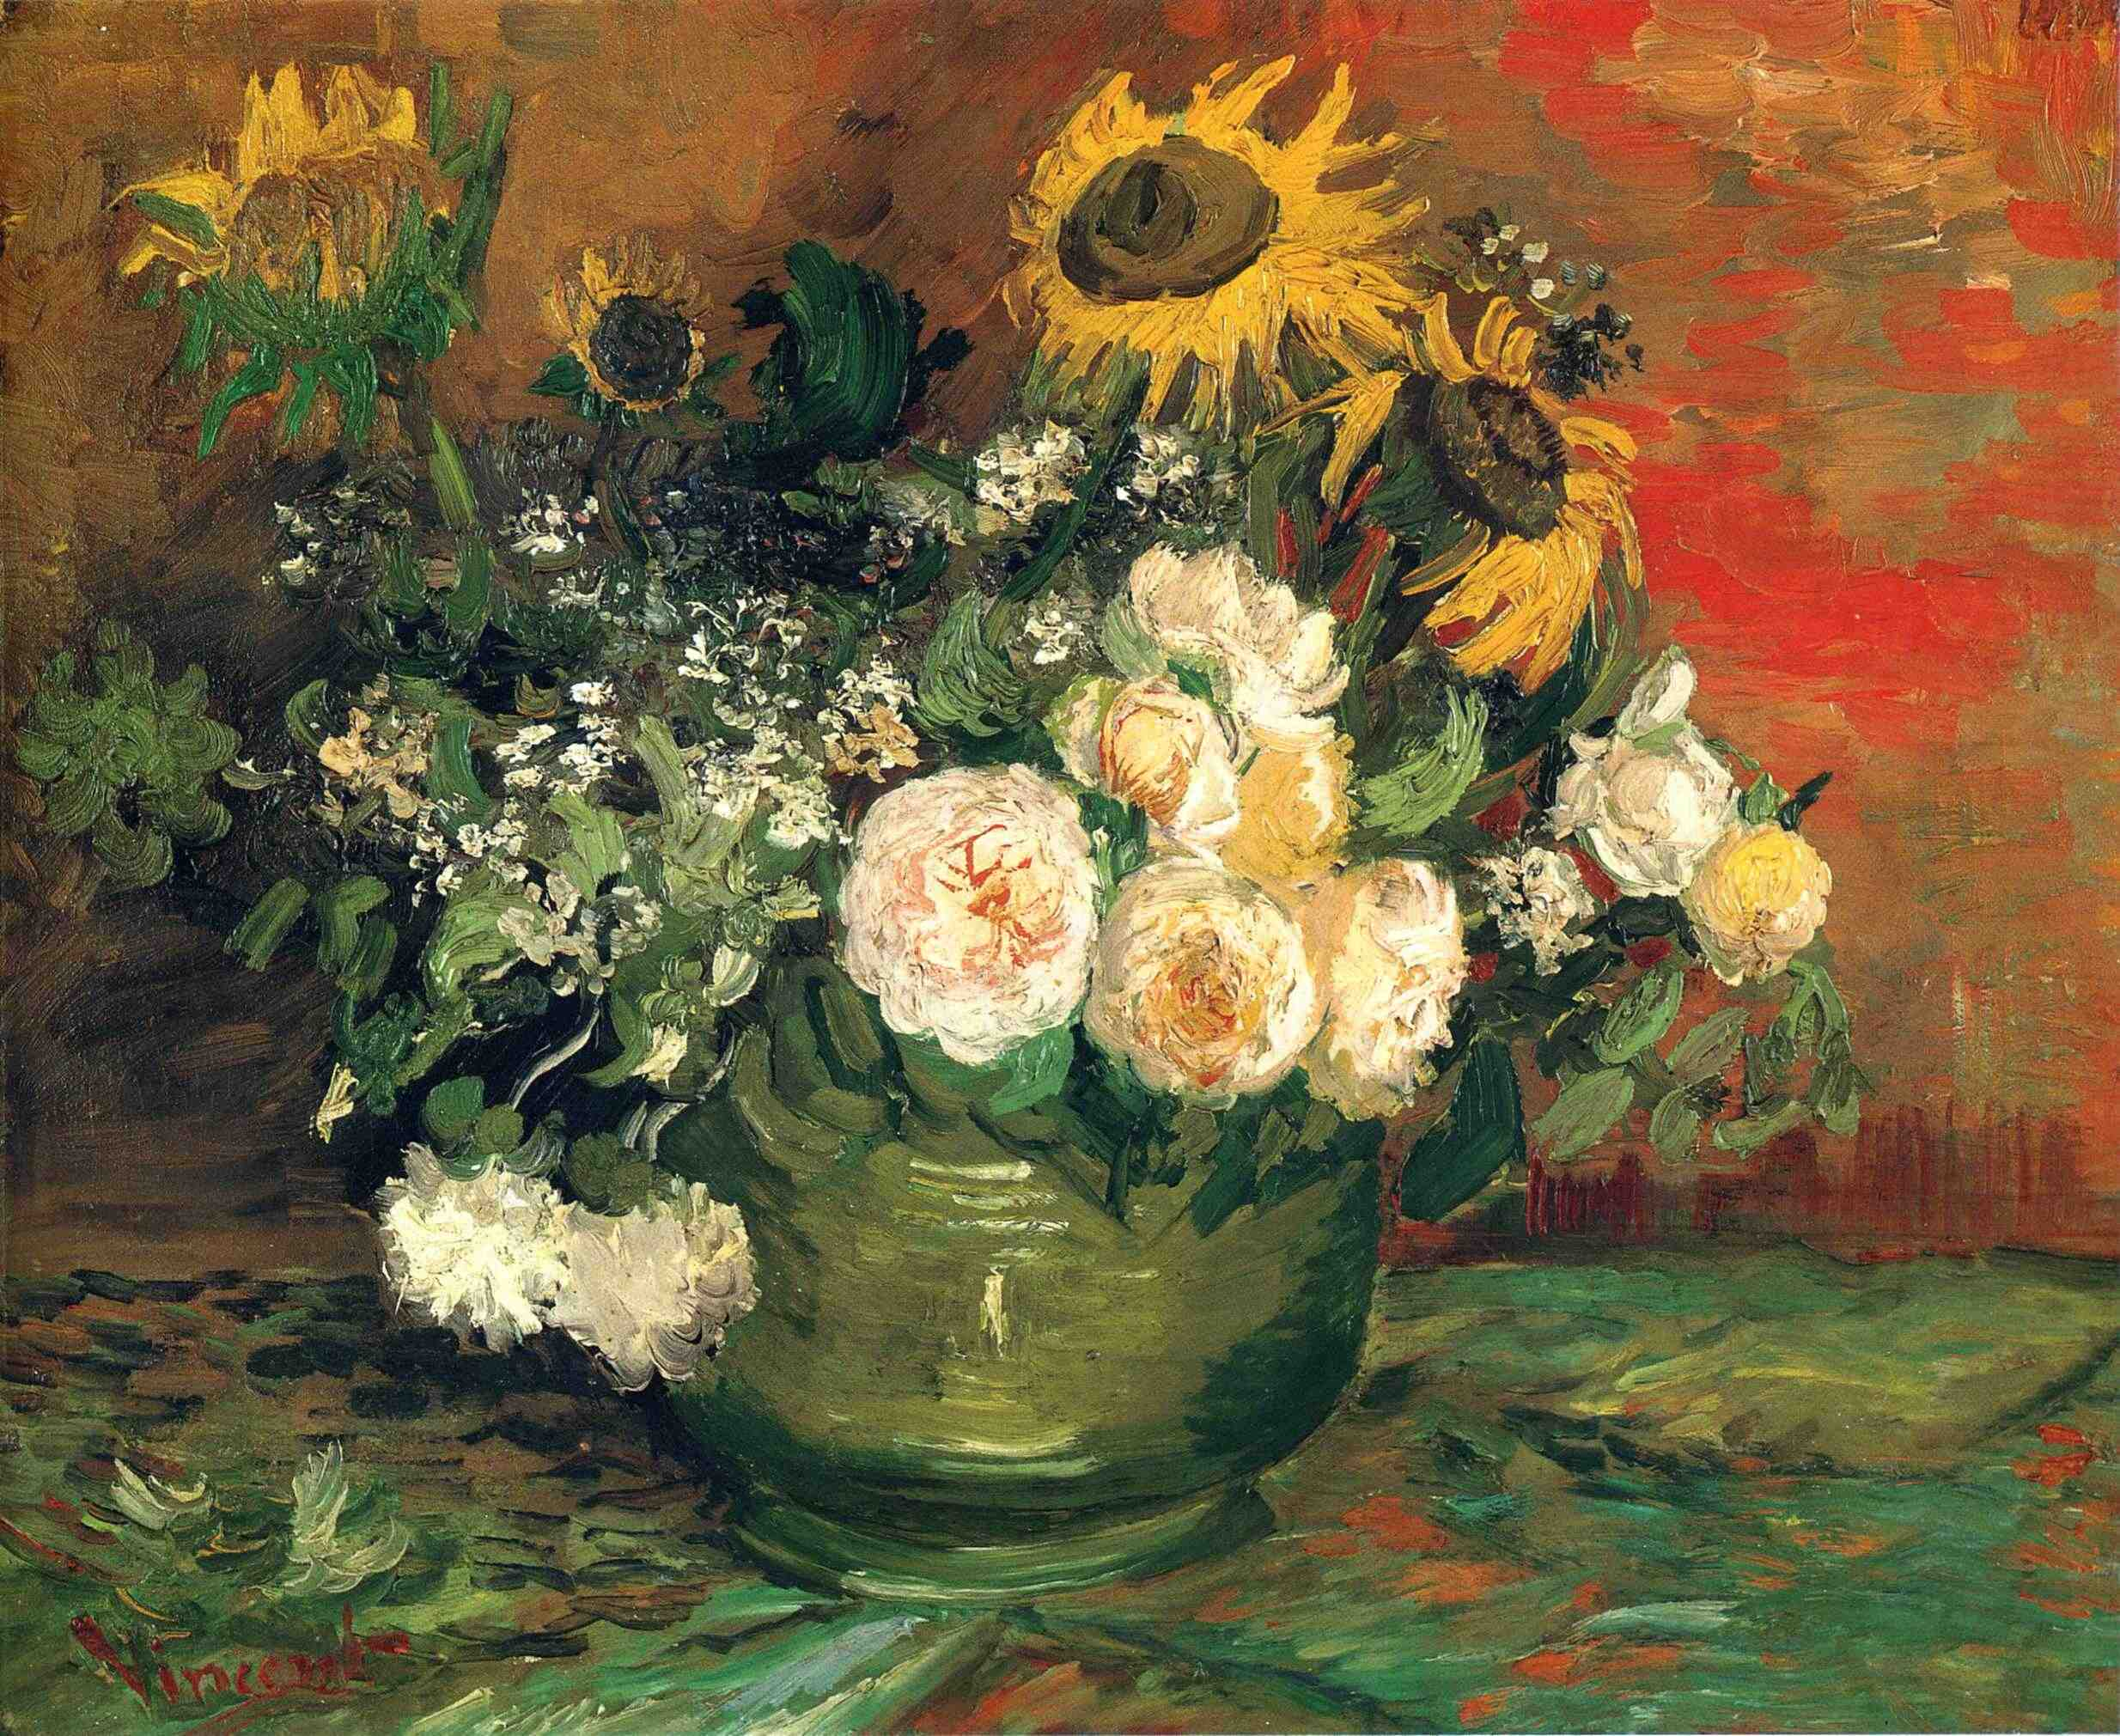 Van Gogh, Roses and Sunflowers